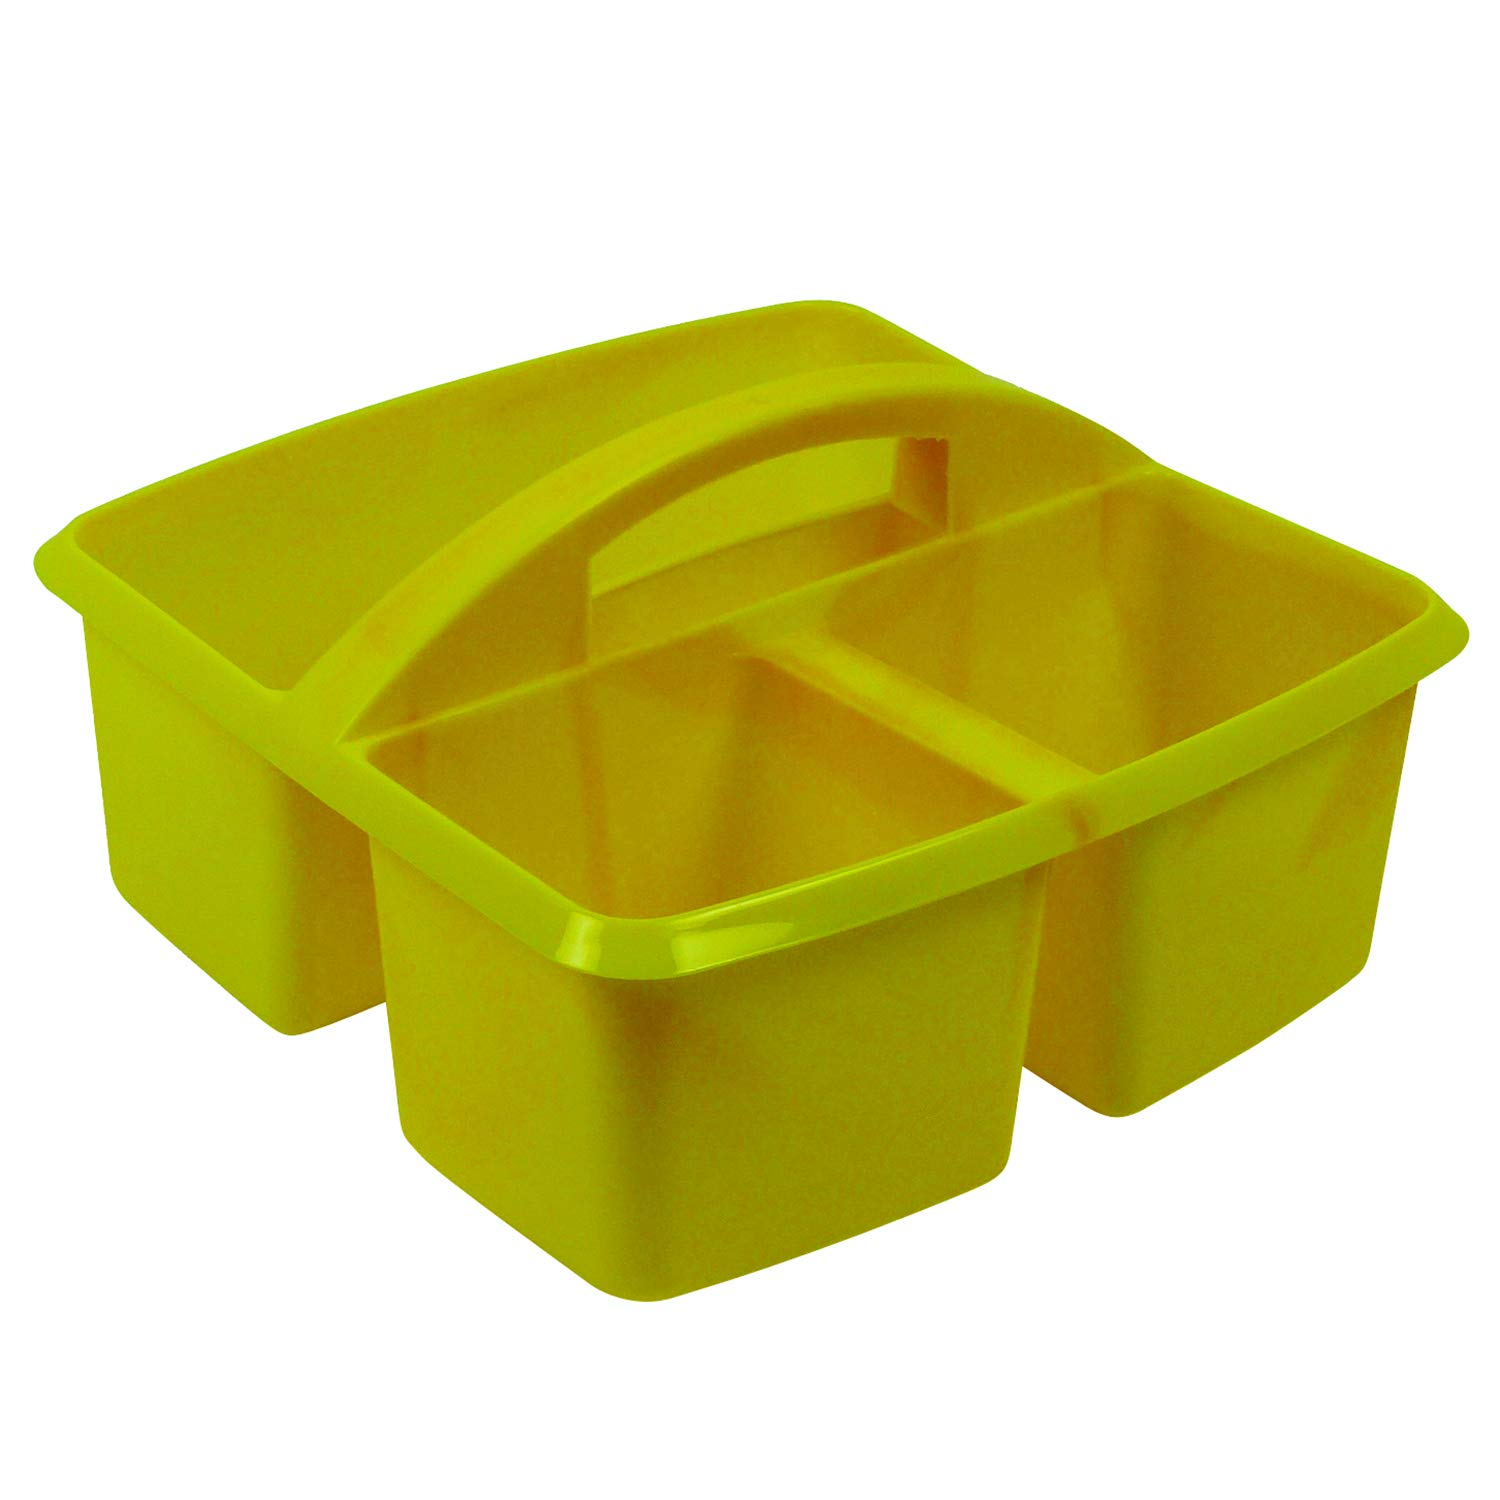 Romanoff Products ROM25903BN Small Utility Caddy, Yellow, Pack of 6